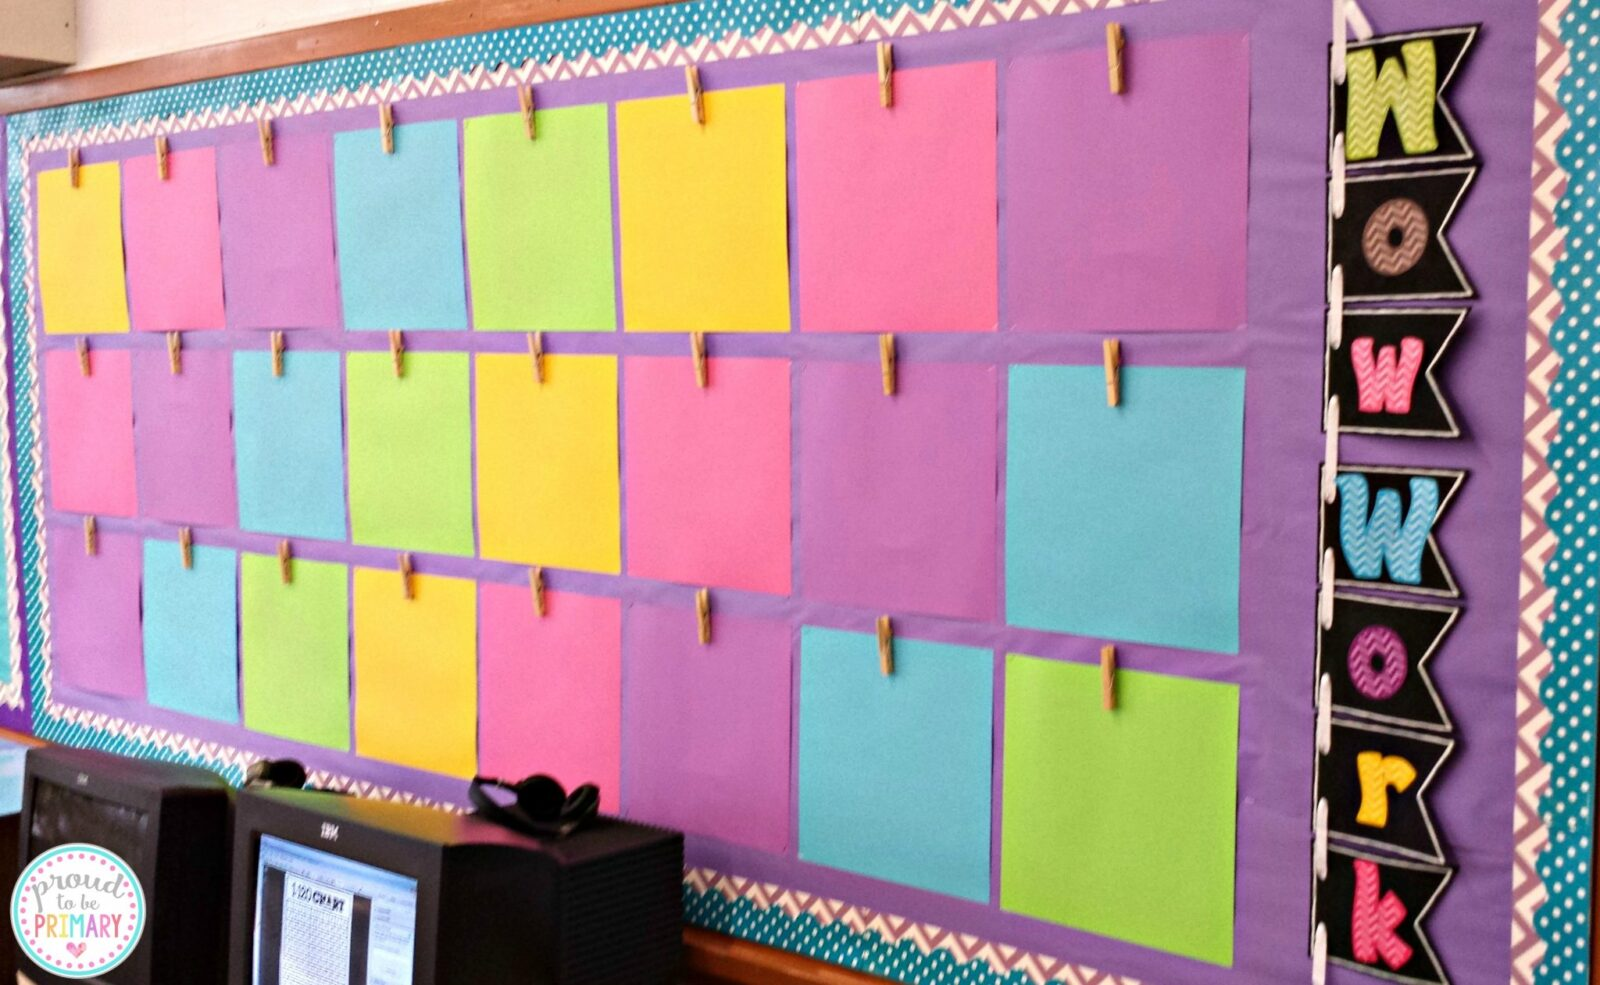 work display bulletin board ready for the first week of school